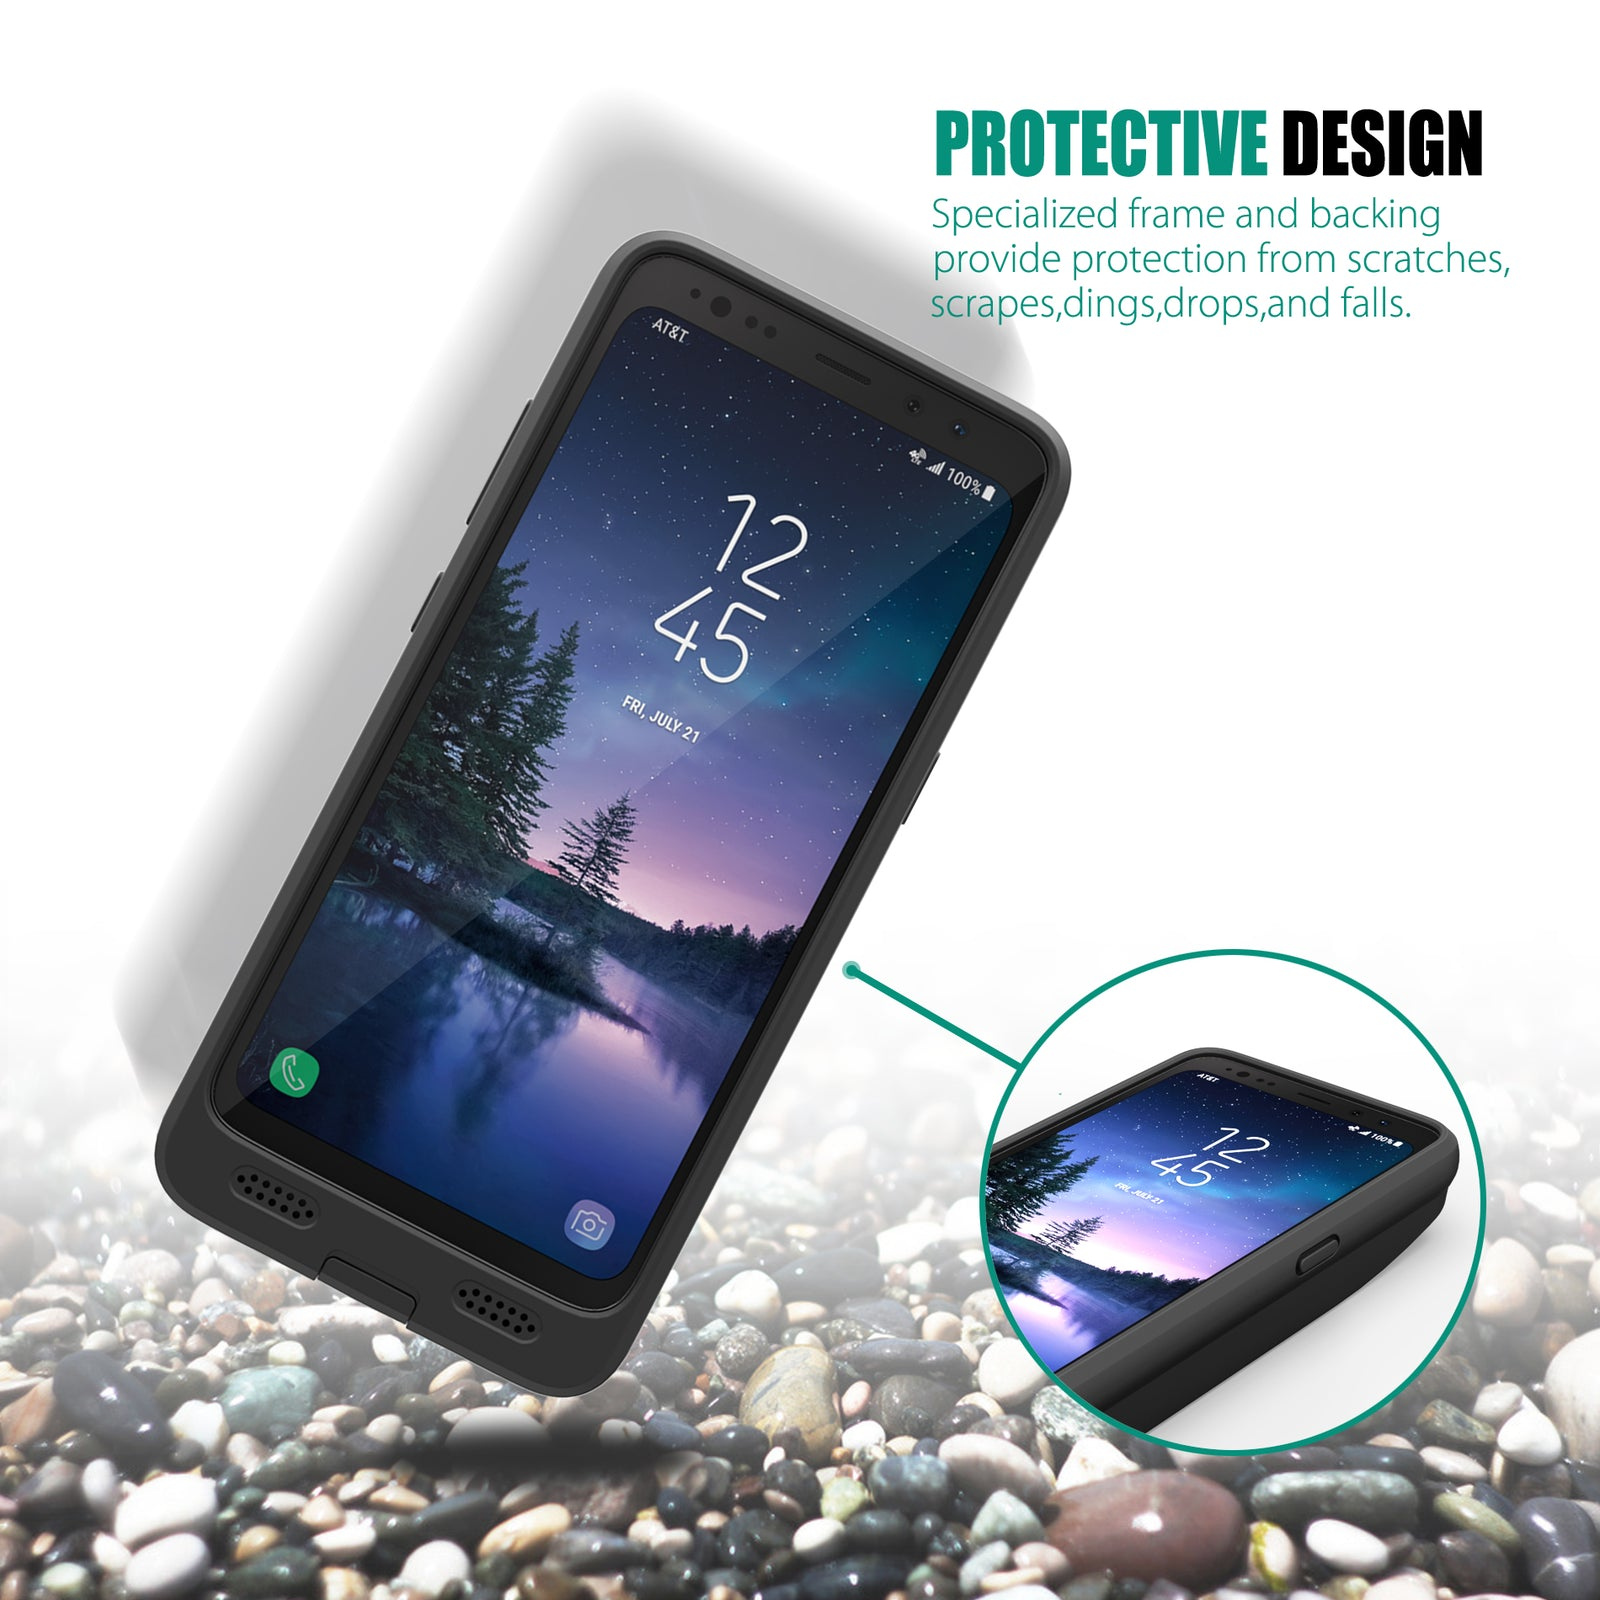 Galaxy S8 Active 8000mAh Battery Case [Shipping to US Only]